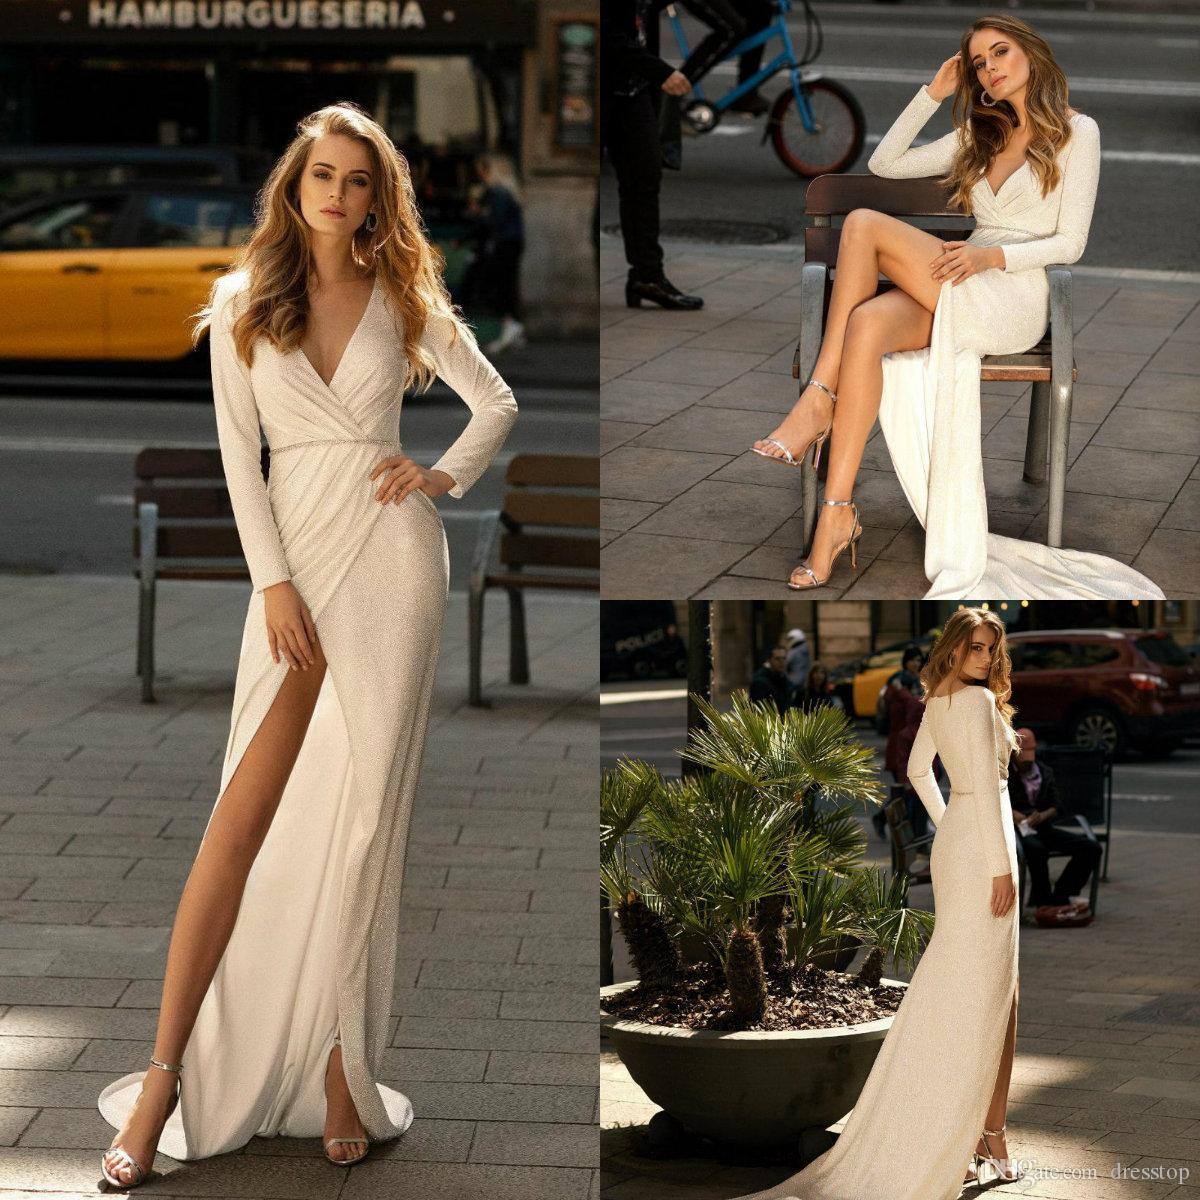 2020 Chic Long Sleeve Wedding Dresses Thigh High Slit Sequined Satin Beach Wedding Gowns Ruched V Neck Custom Made vestido de novia